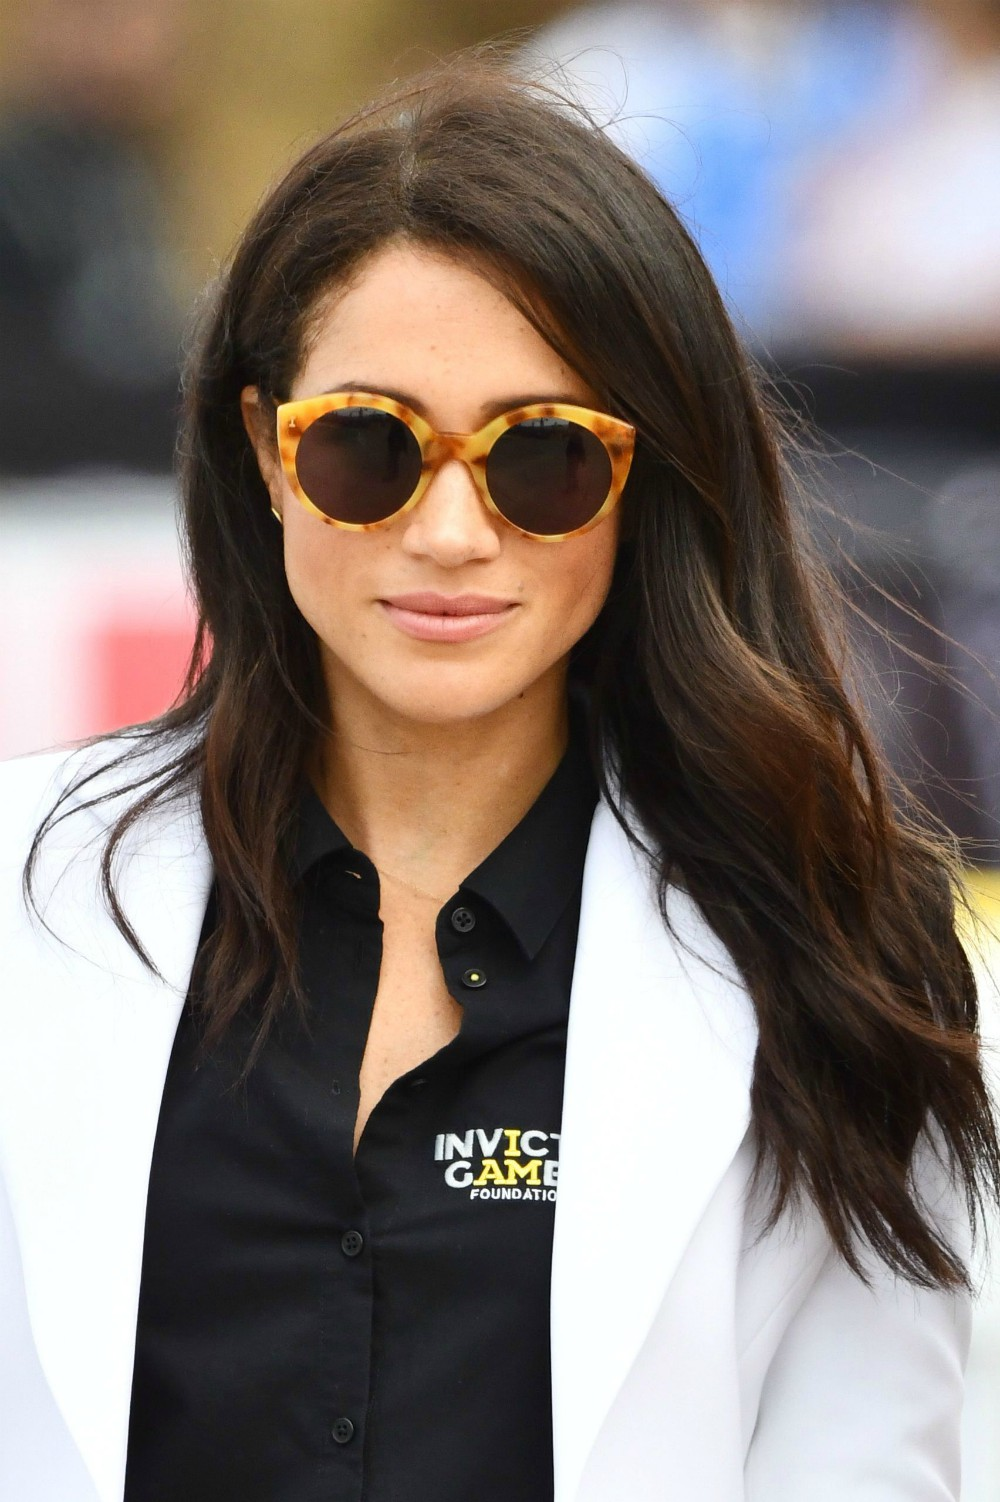 "When it comes to accessories, consumers are looking for tortoiseshell. Pinterest data shows searches for earrings made from or mimicking the animal print leaped 679 percent over the course of 2018. Here, the Duchess of Sussex lends the ""Meghan Markle Effect"" to the trend, modeling oval tortoiseshell sunglasses."